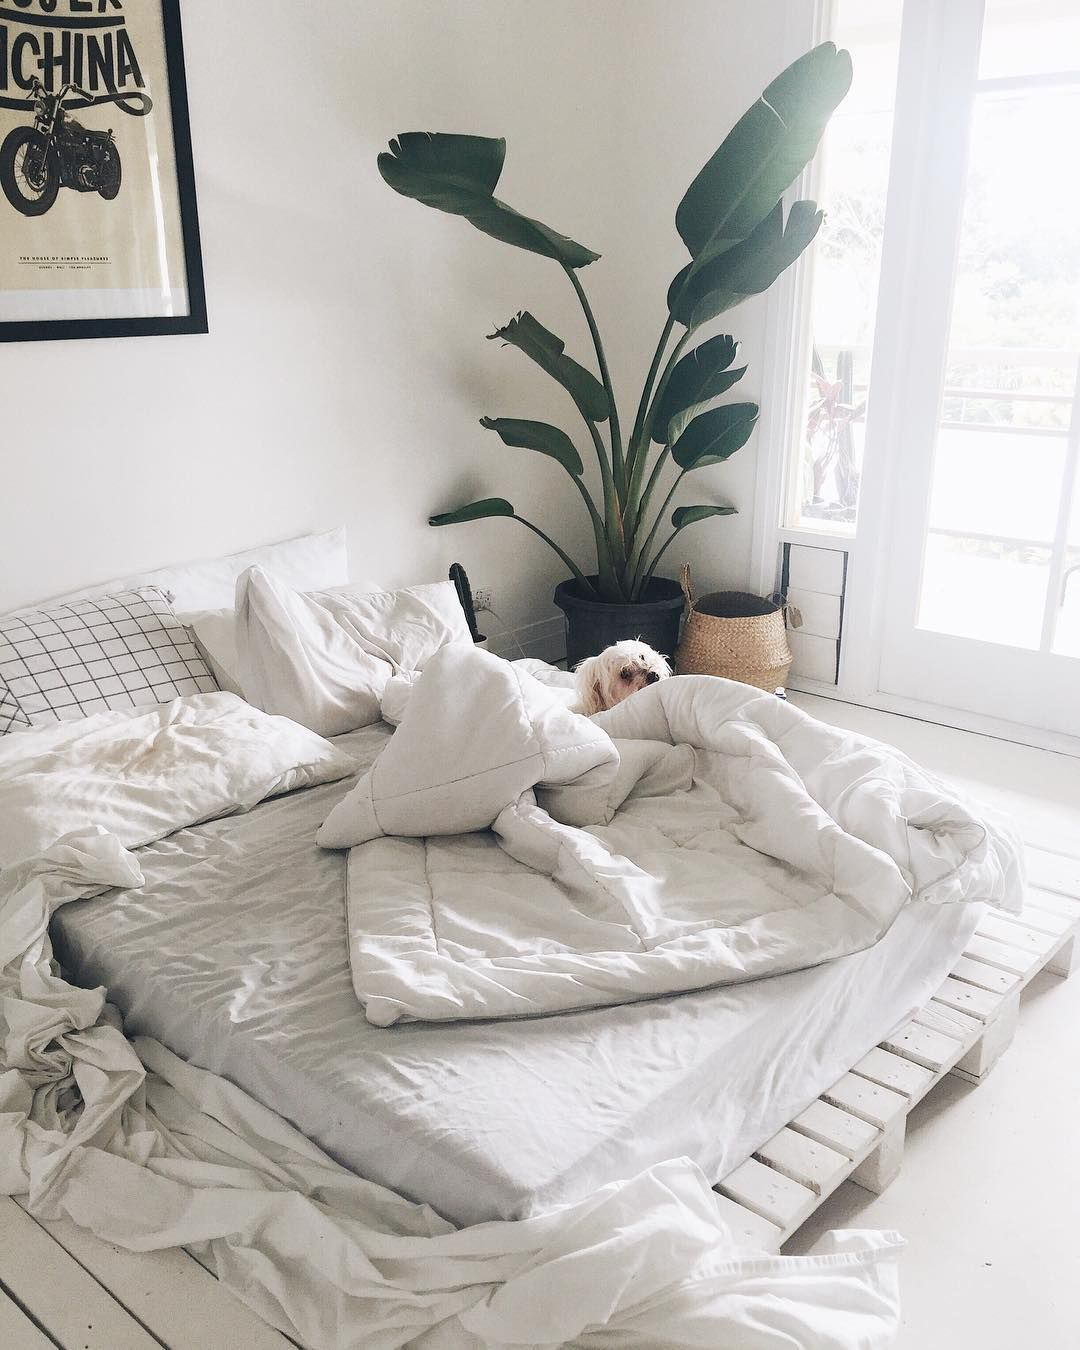 Furniture 0 Interest: Zero Waste Bed Inspiration